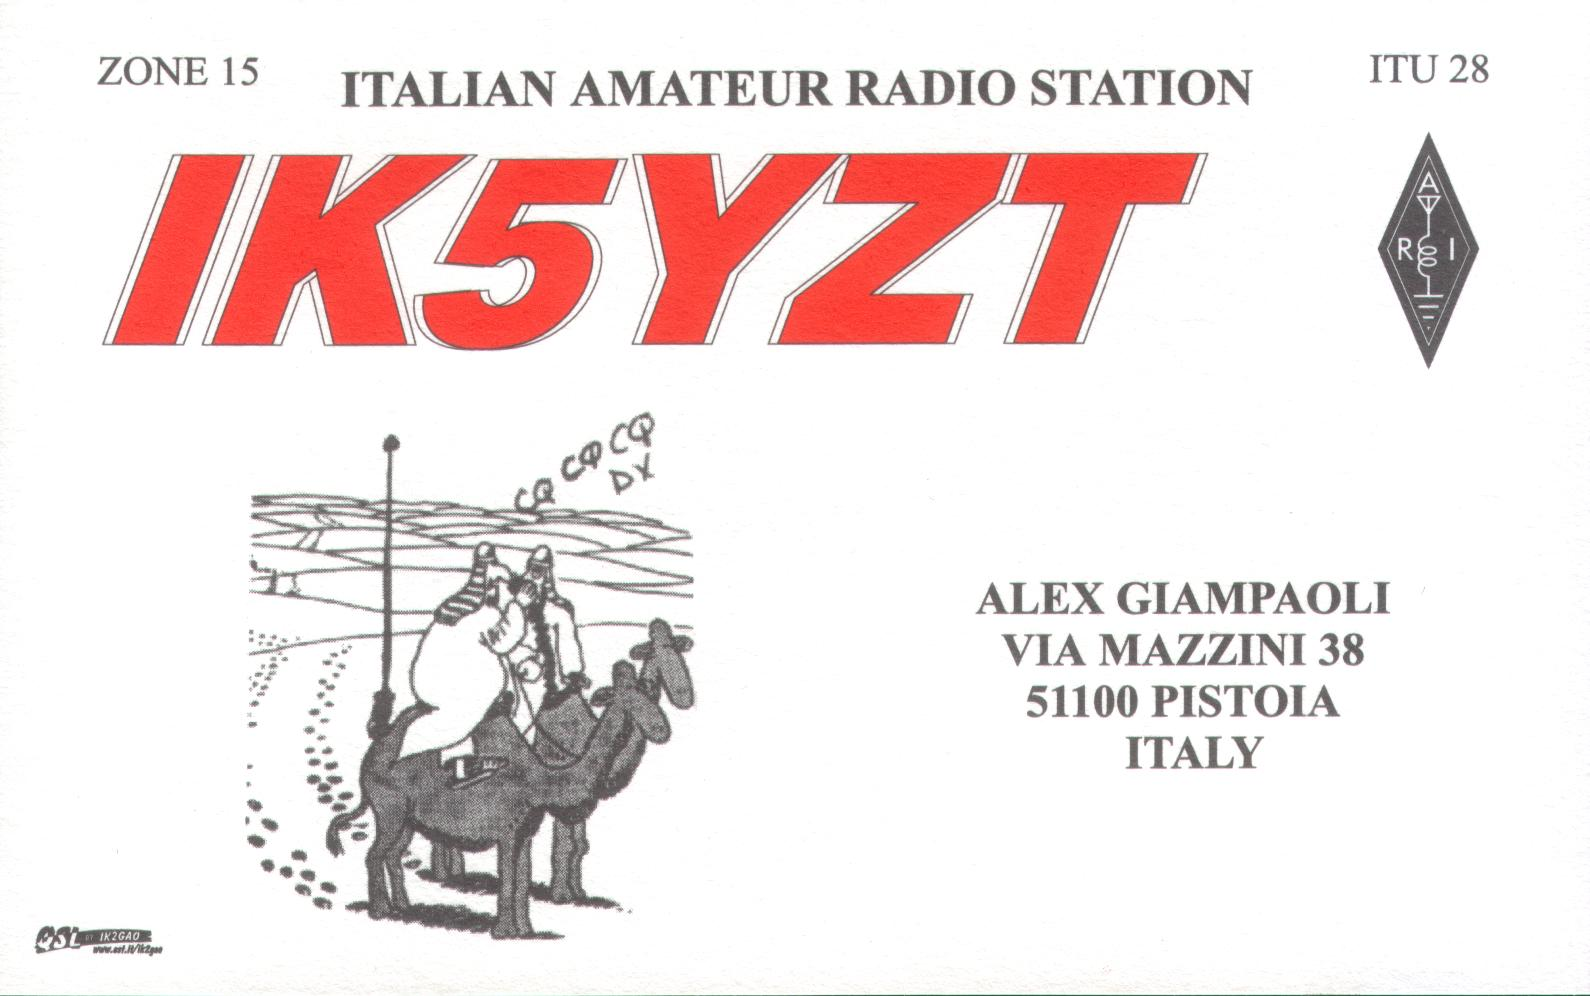 QSL image for IK5YZT